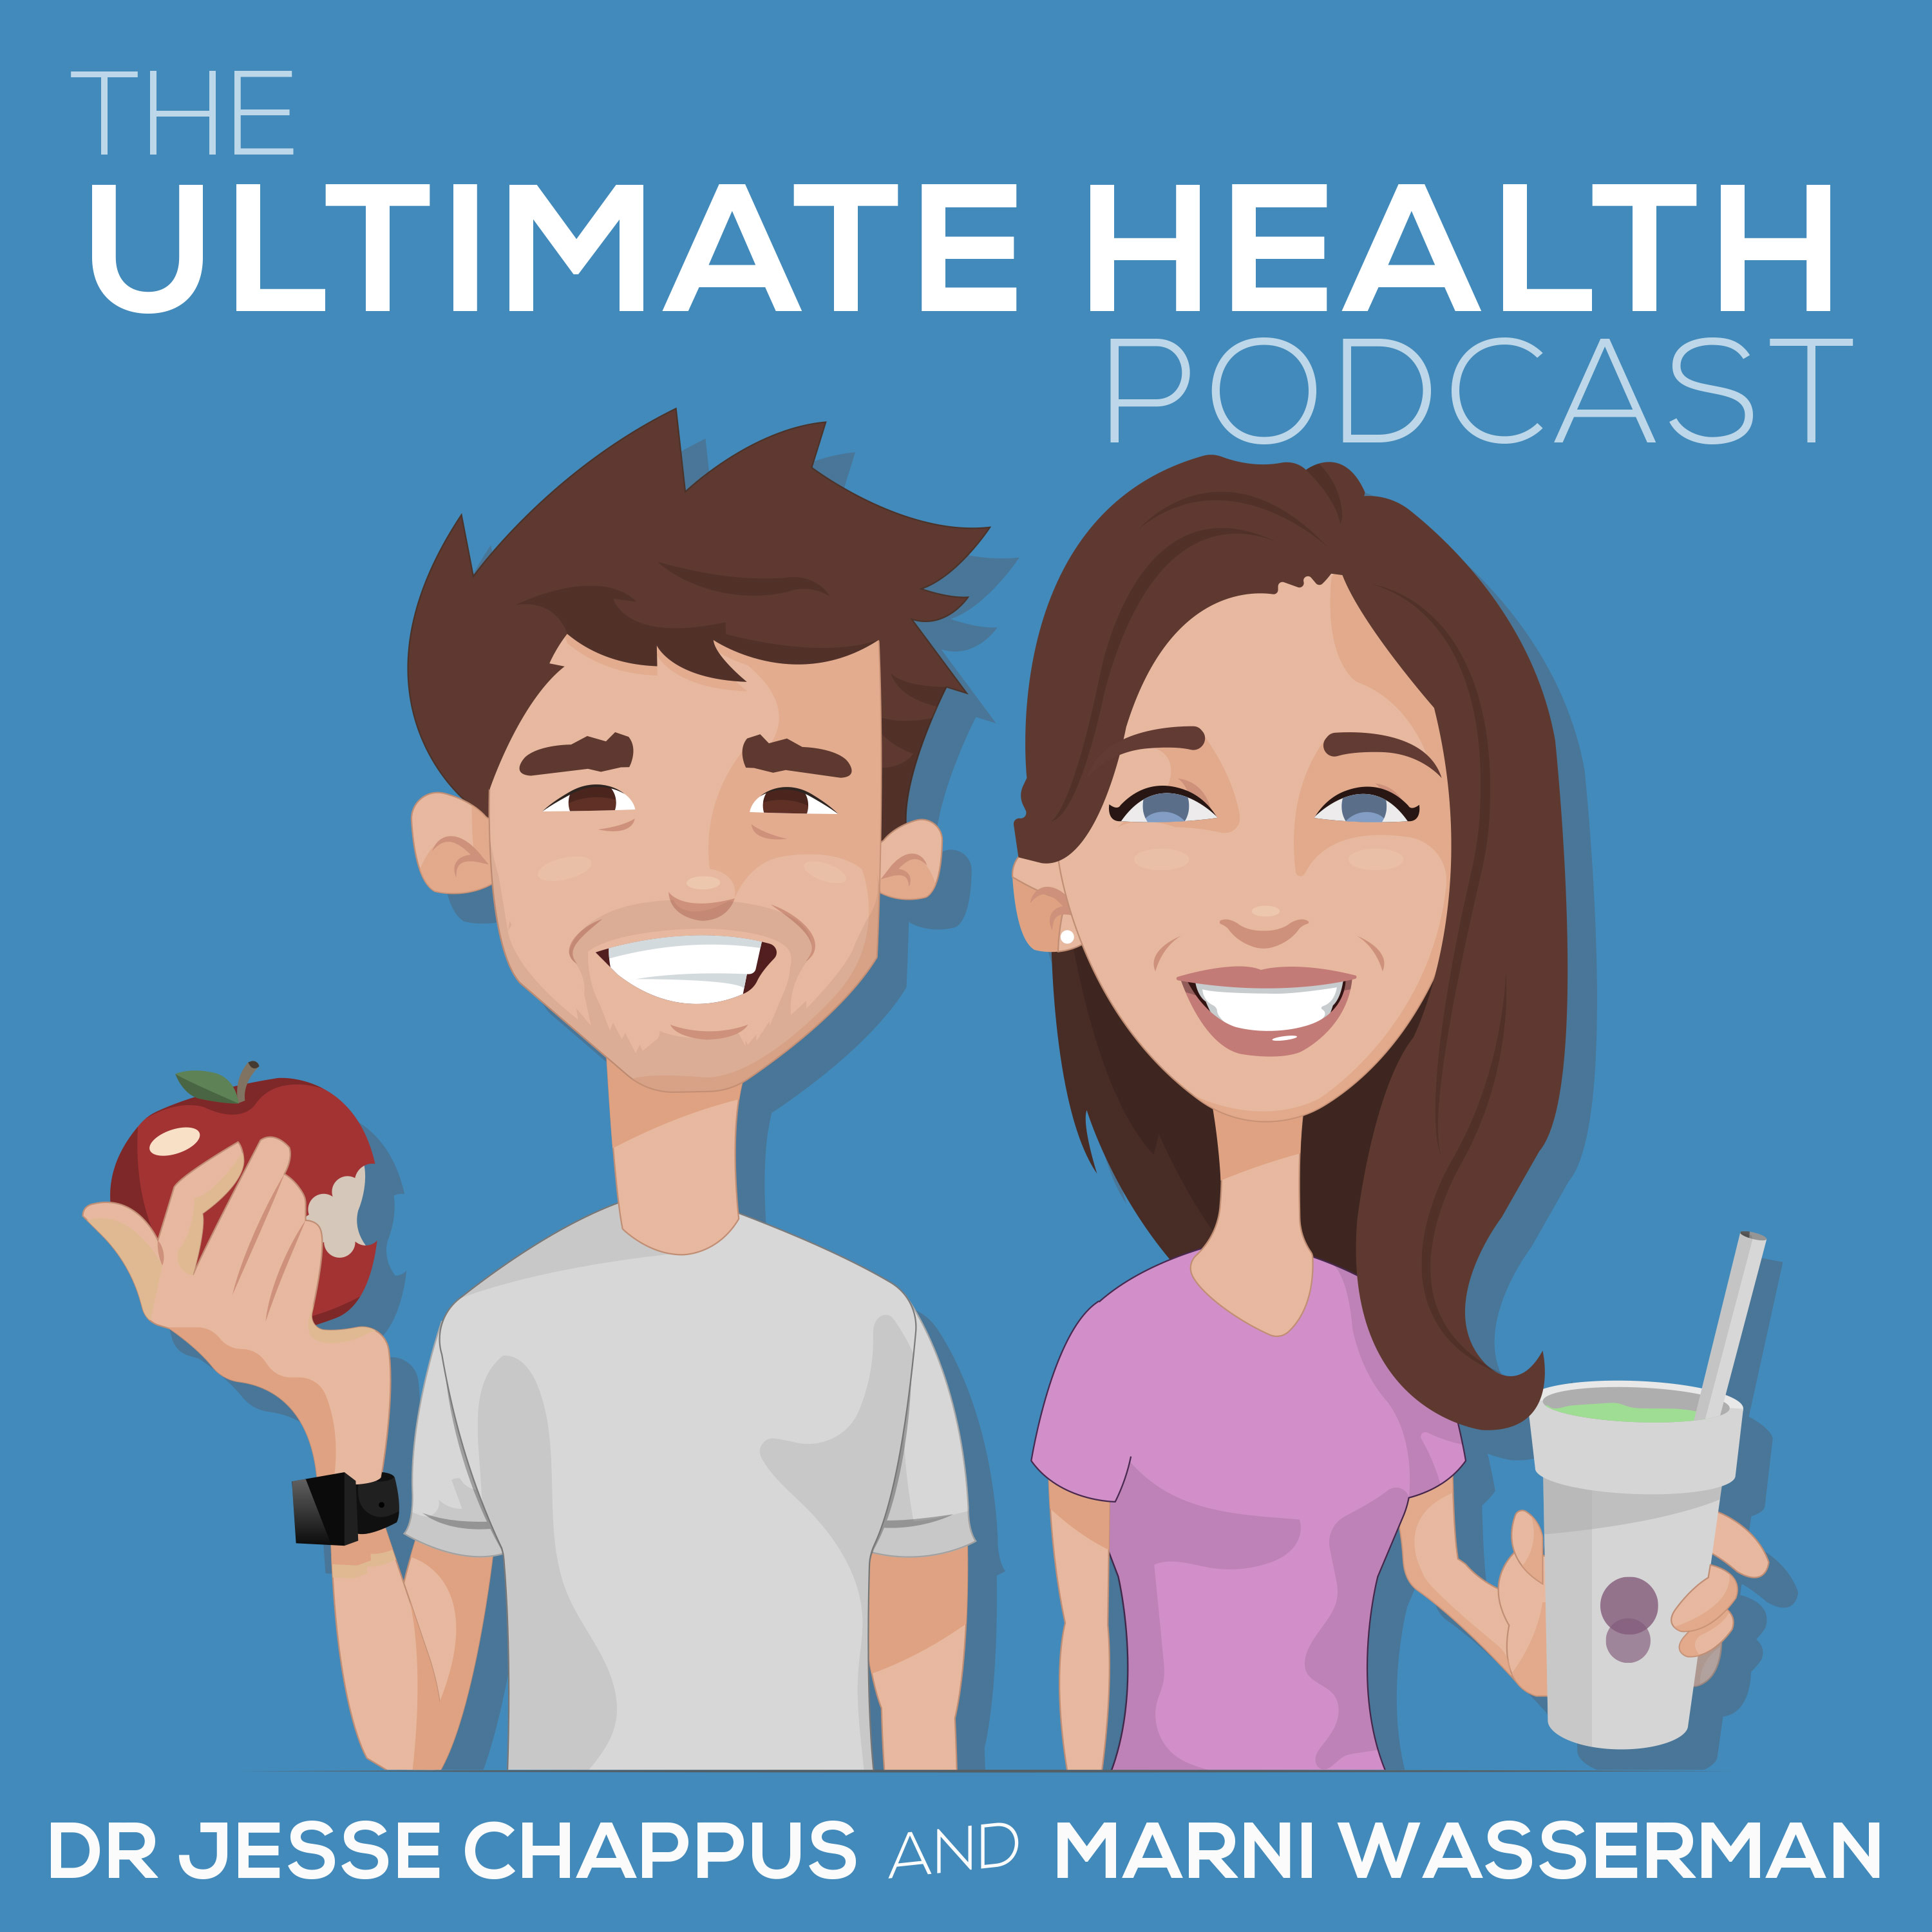 Artwork for The Ultimate Health Podcast